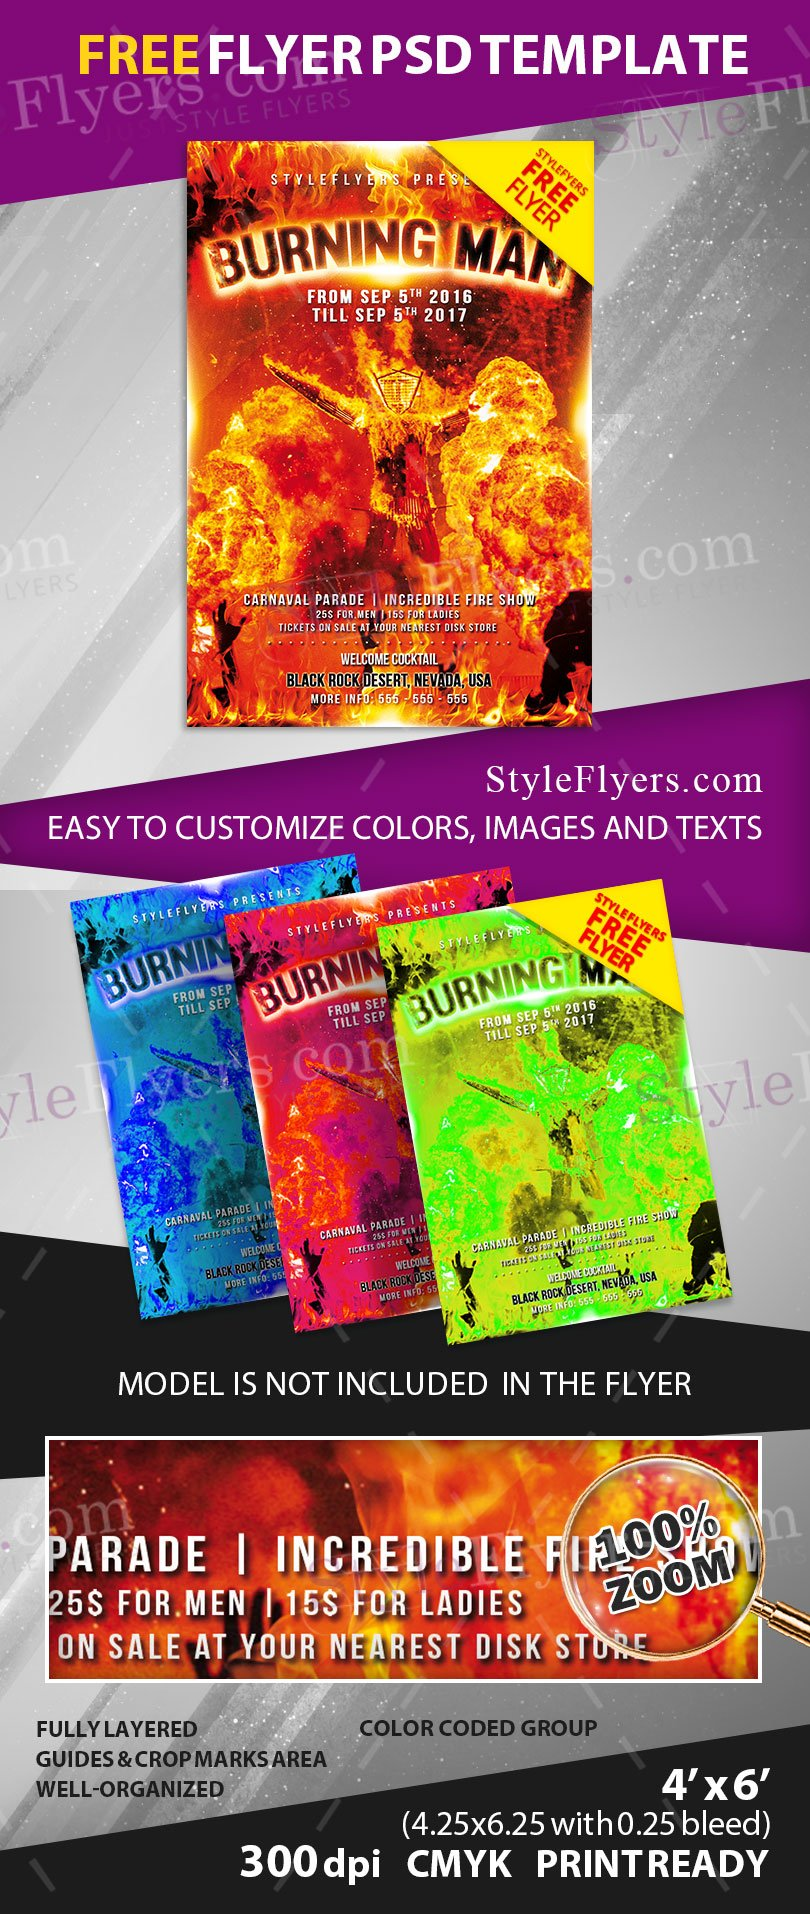 preview_burning_man_psd_flyer_template